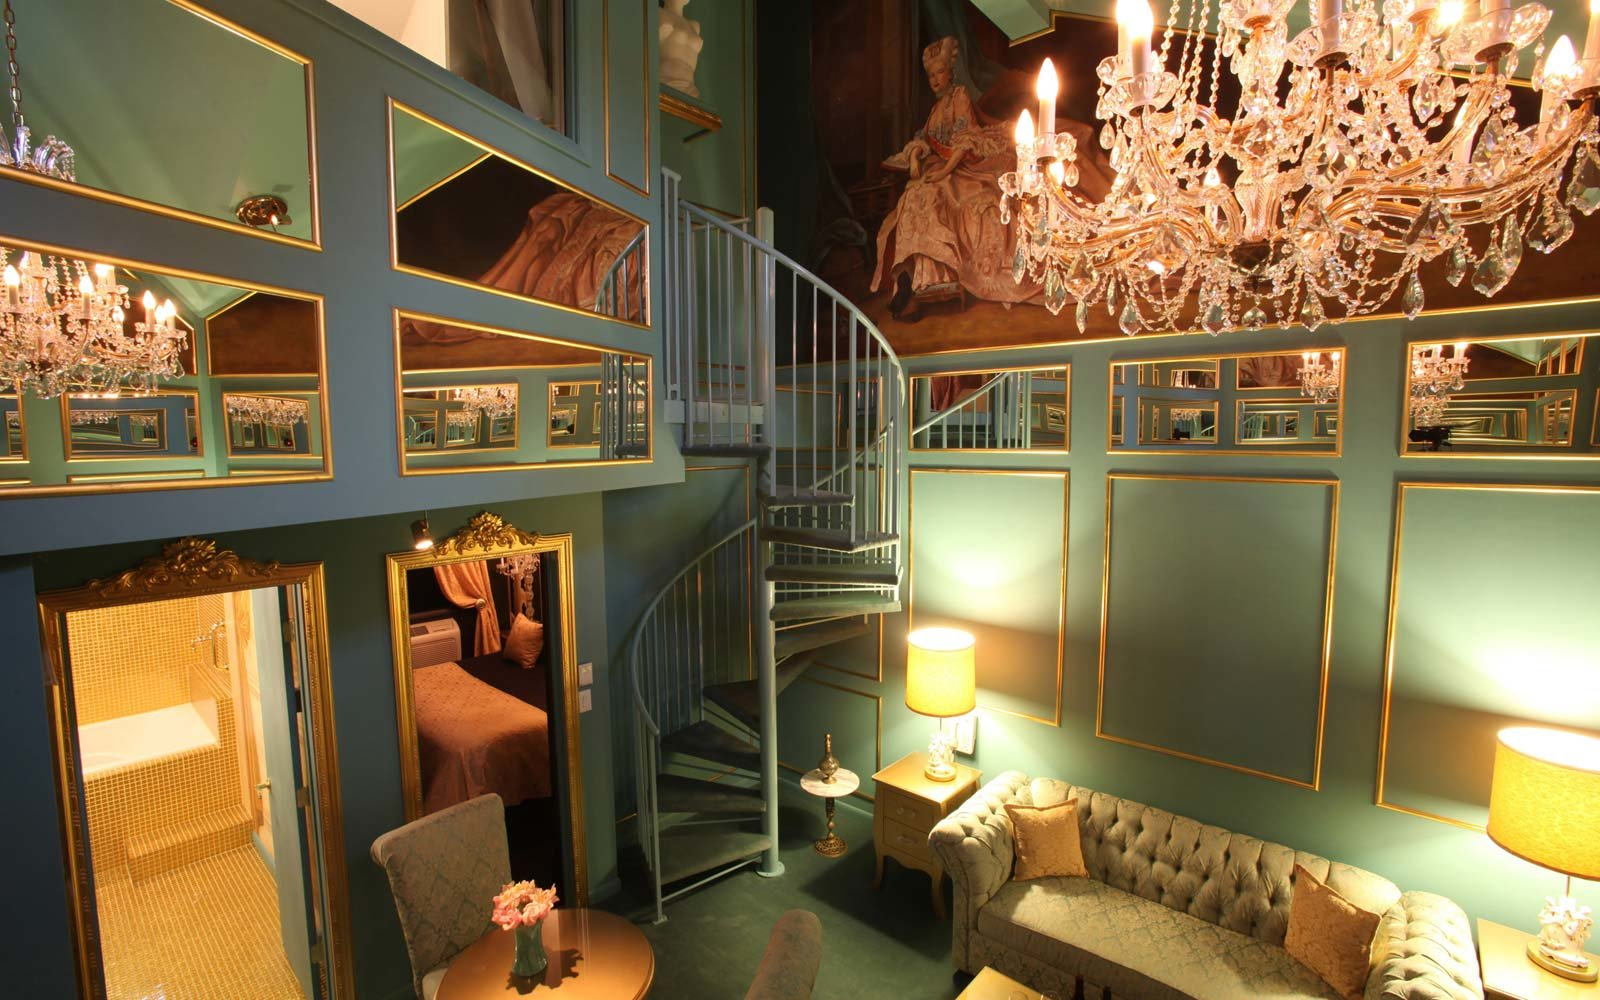 20 Amazing Hotel Rooms Inspired By Your Favorite Film And